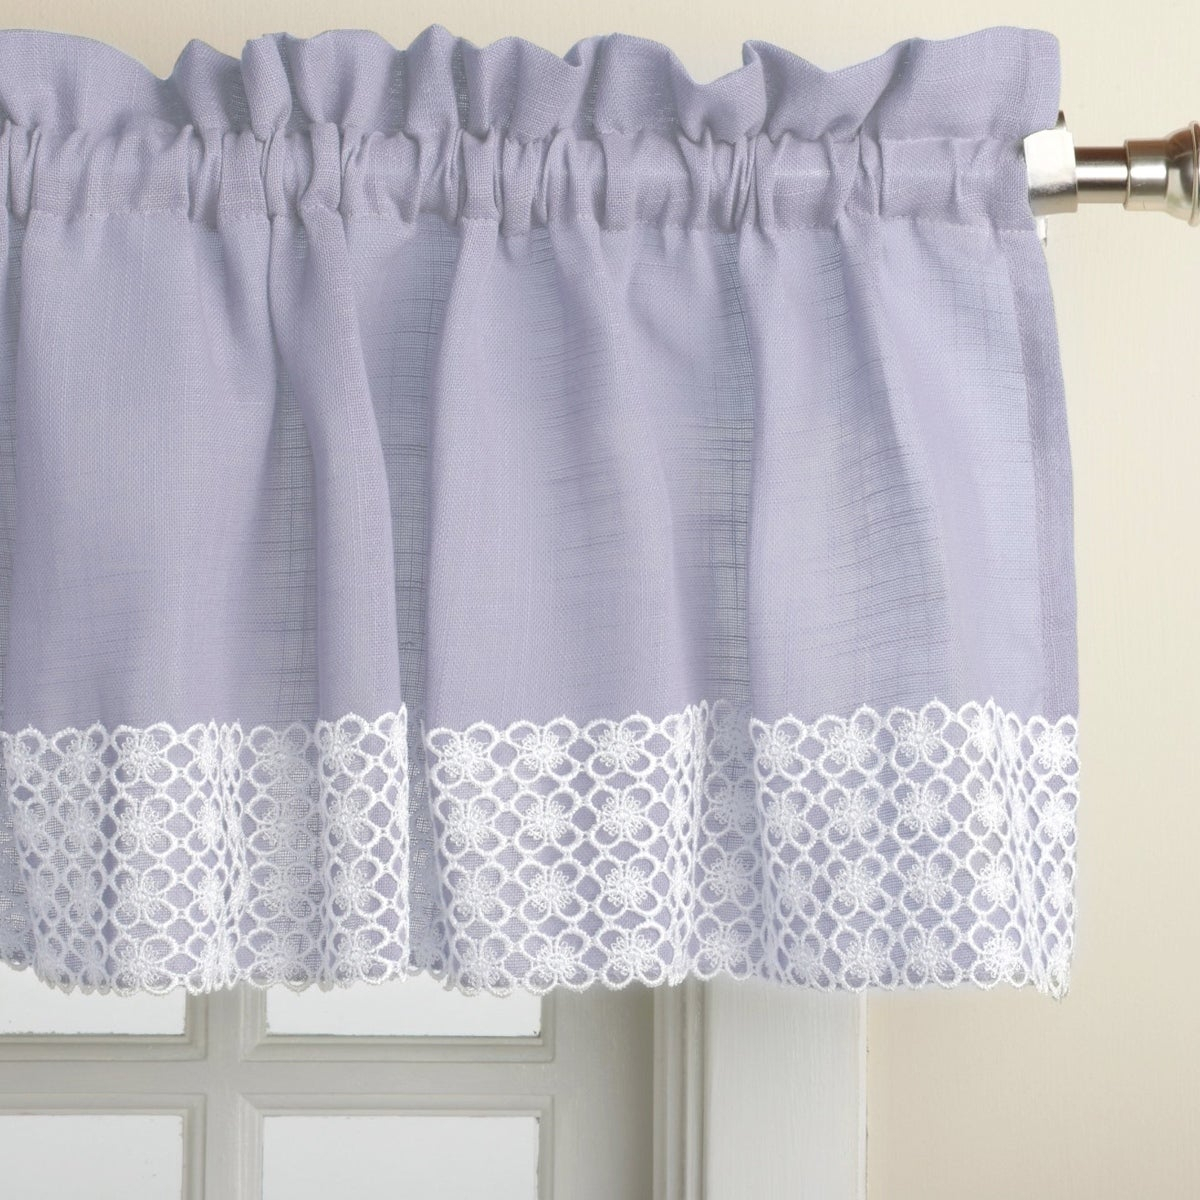 Blue Country Style Kitchen Curtains With White Daisy Lace Accent Inside Country Style Curtain Parts With White Daisy Lace Accent (View 1 of 20)